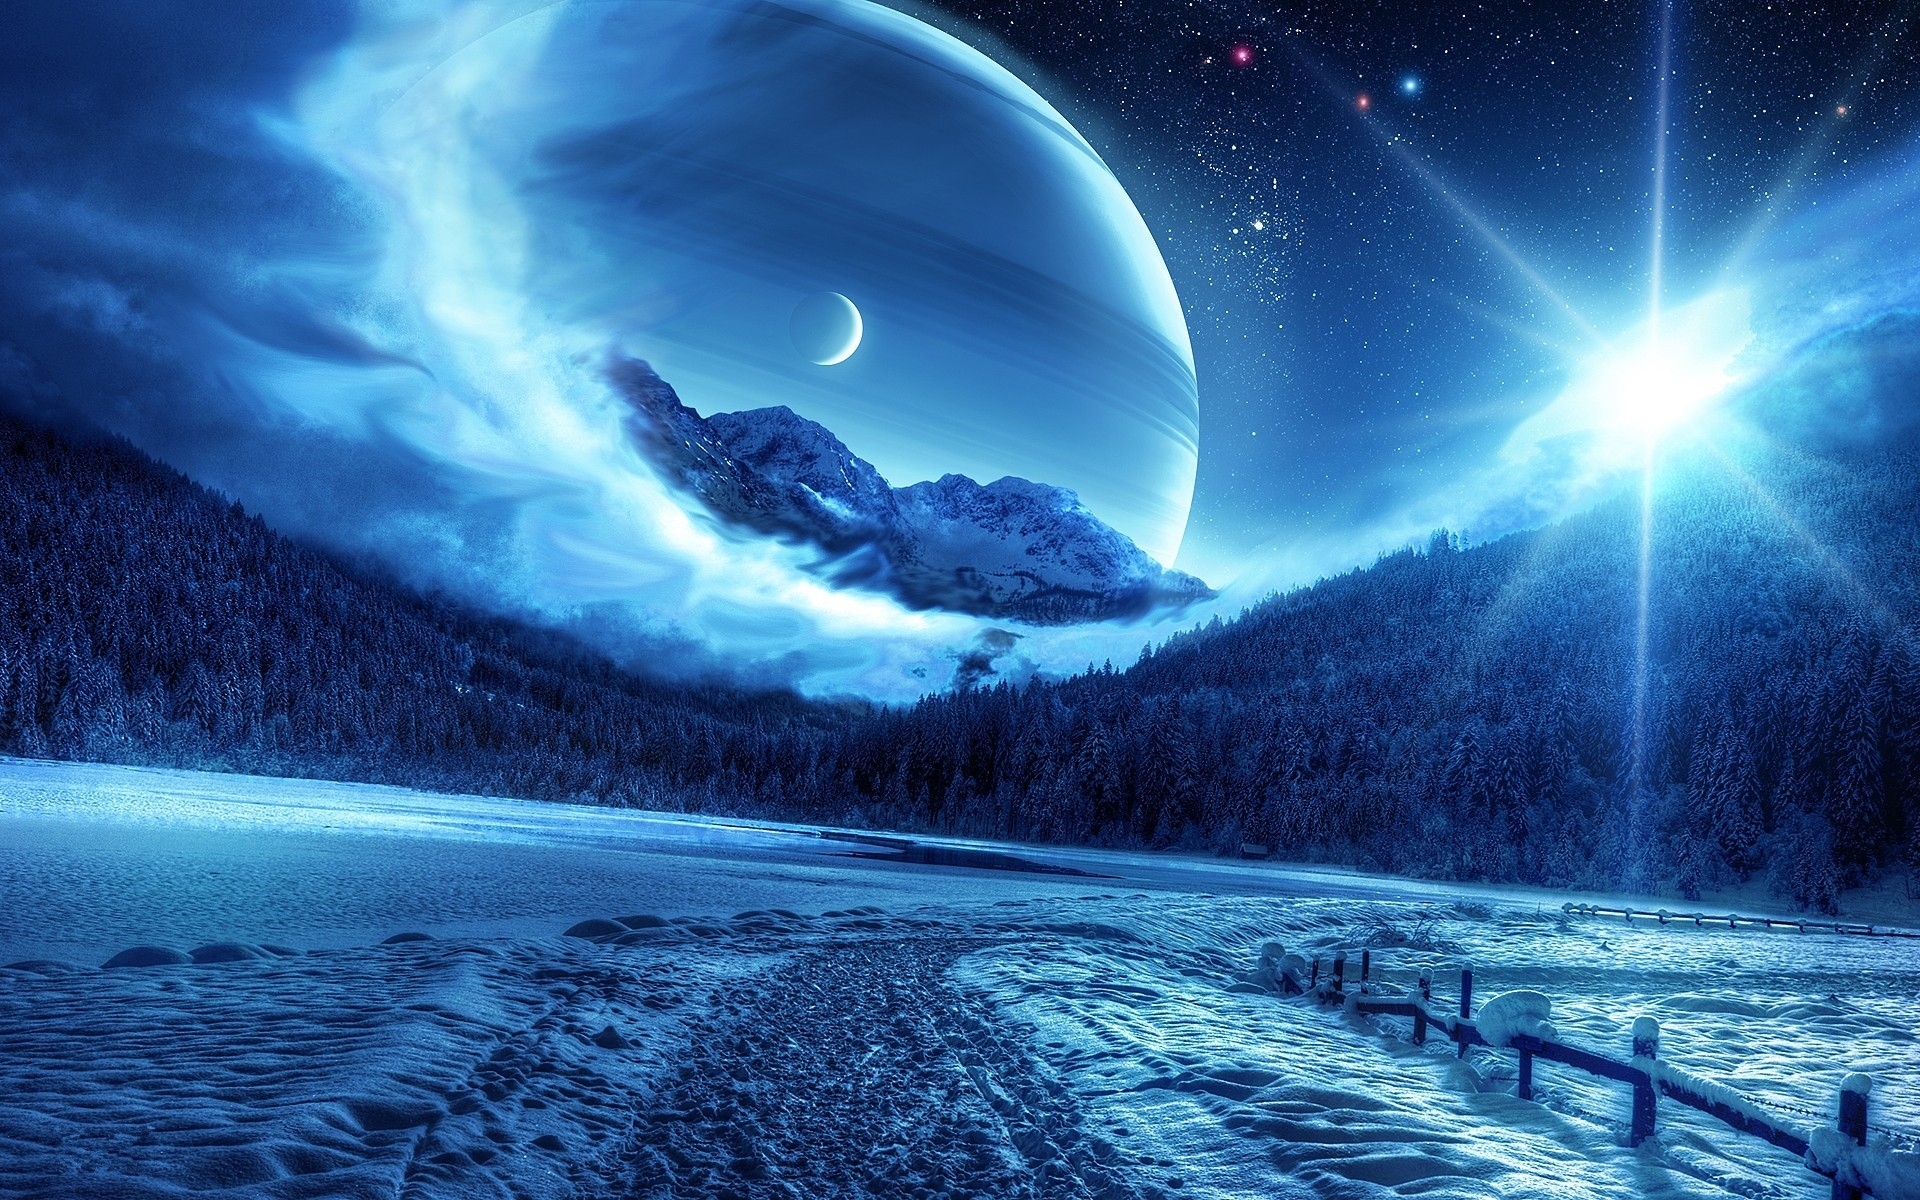 Preview wallpaper winter, night, mountains, road, planet, fantastic  landscape 1920×1200